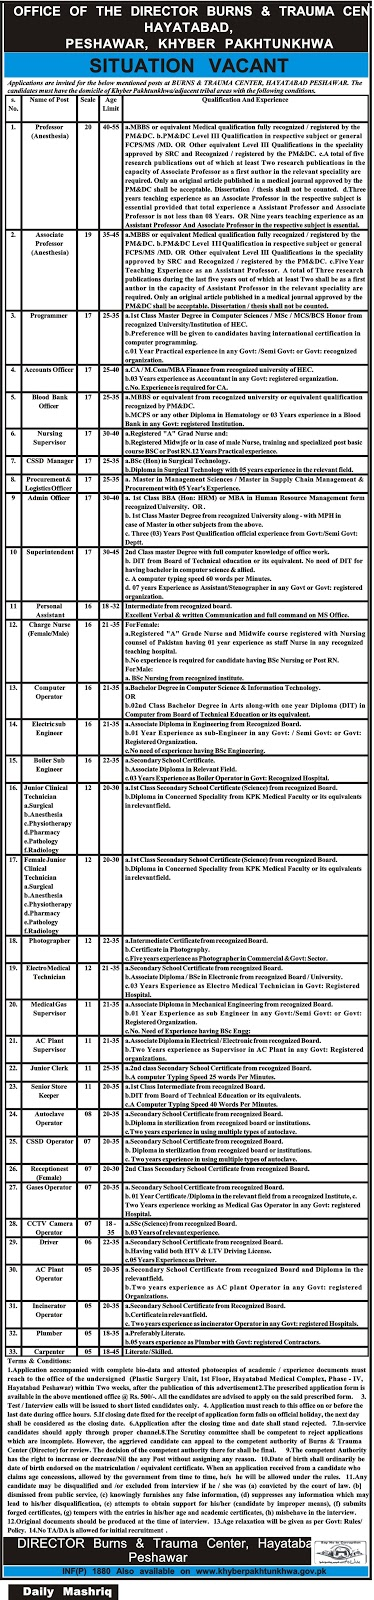 Latest Jobs in office of the Director Burns and Trauma Center 16 April 2018